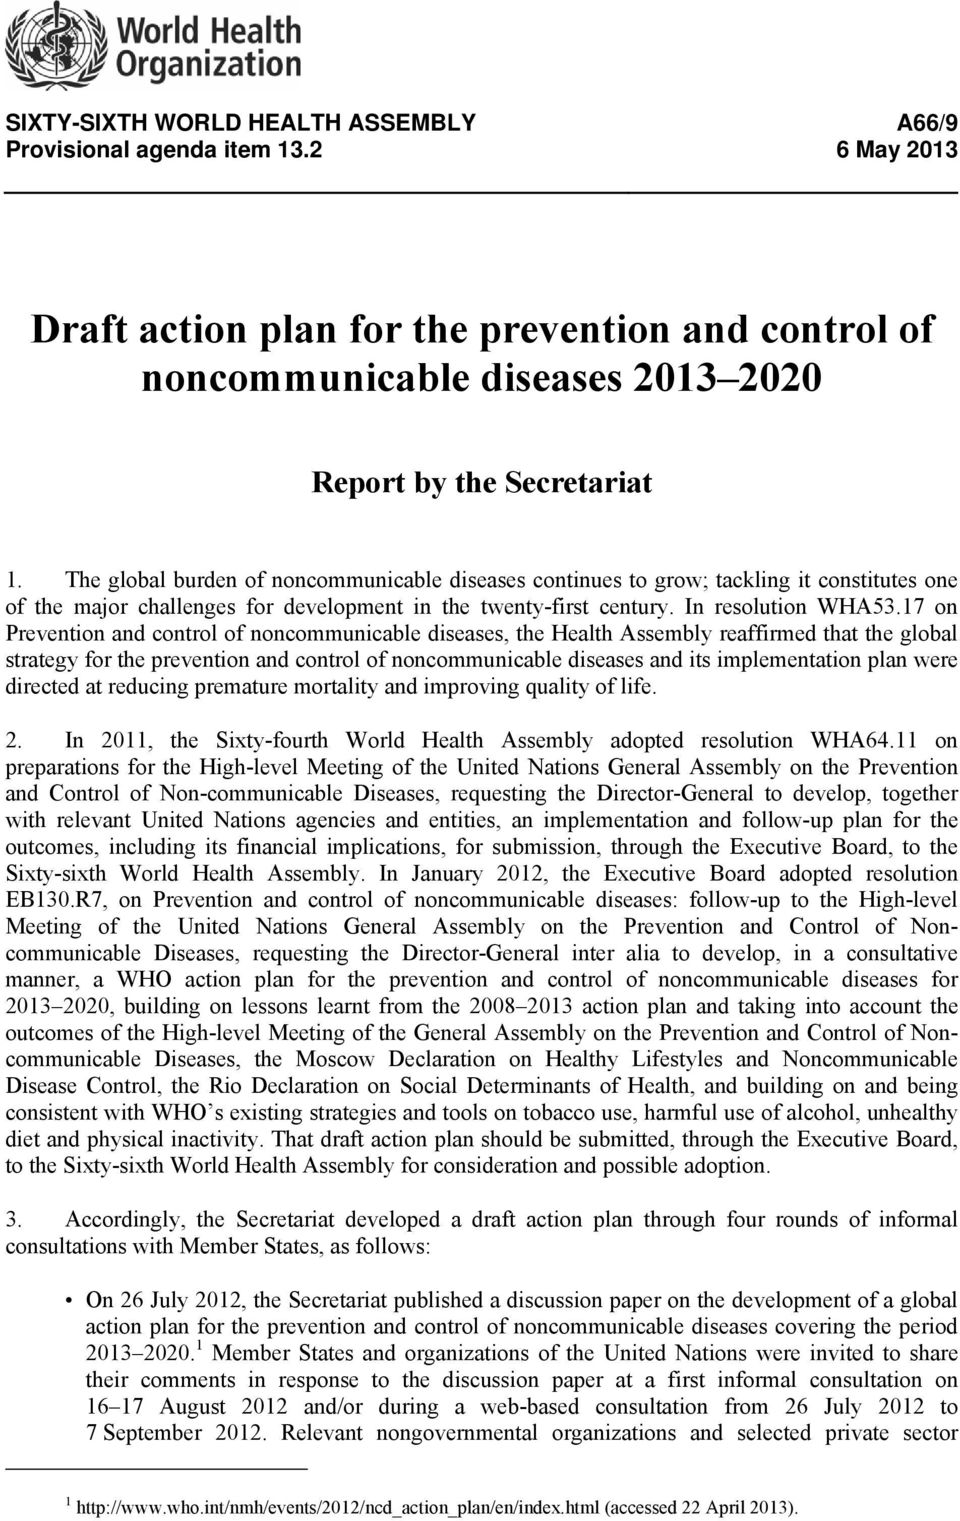 17 on Prevention and control of noncommunicable diseases, the Health Assembly reaffirmed that the global strategy for the prevention and control of noncommunicable diseases and its implementation